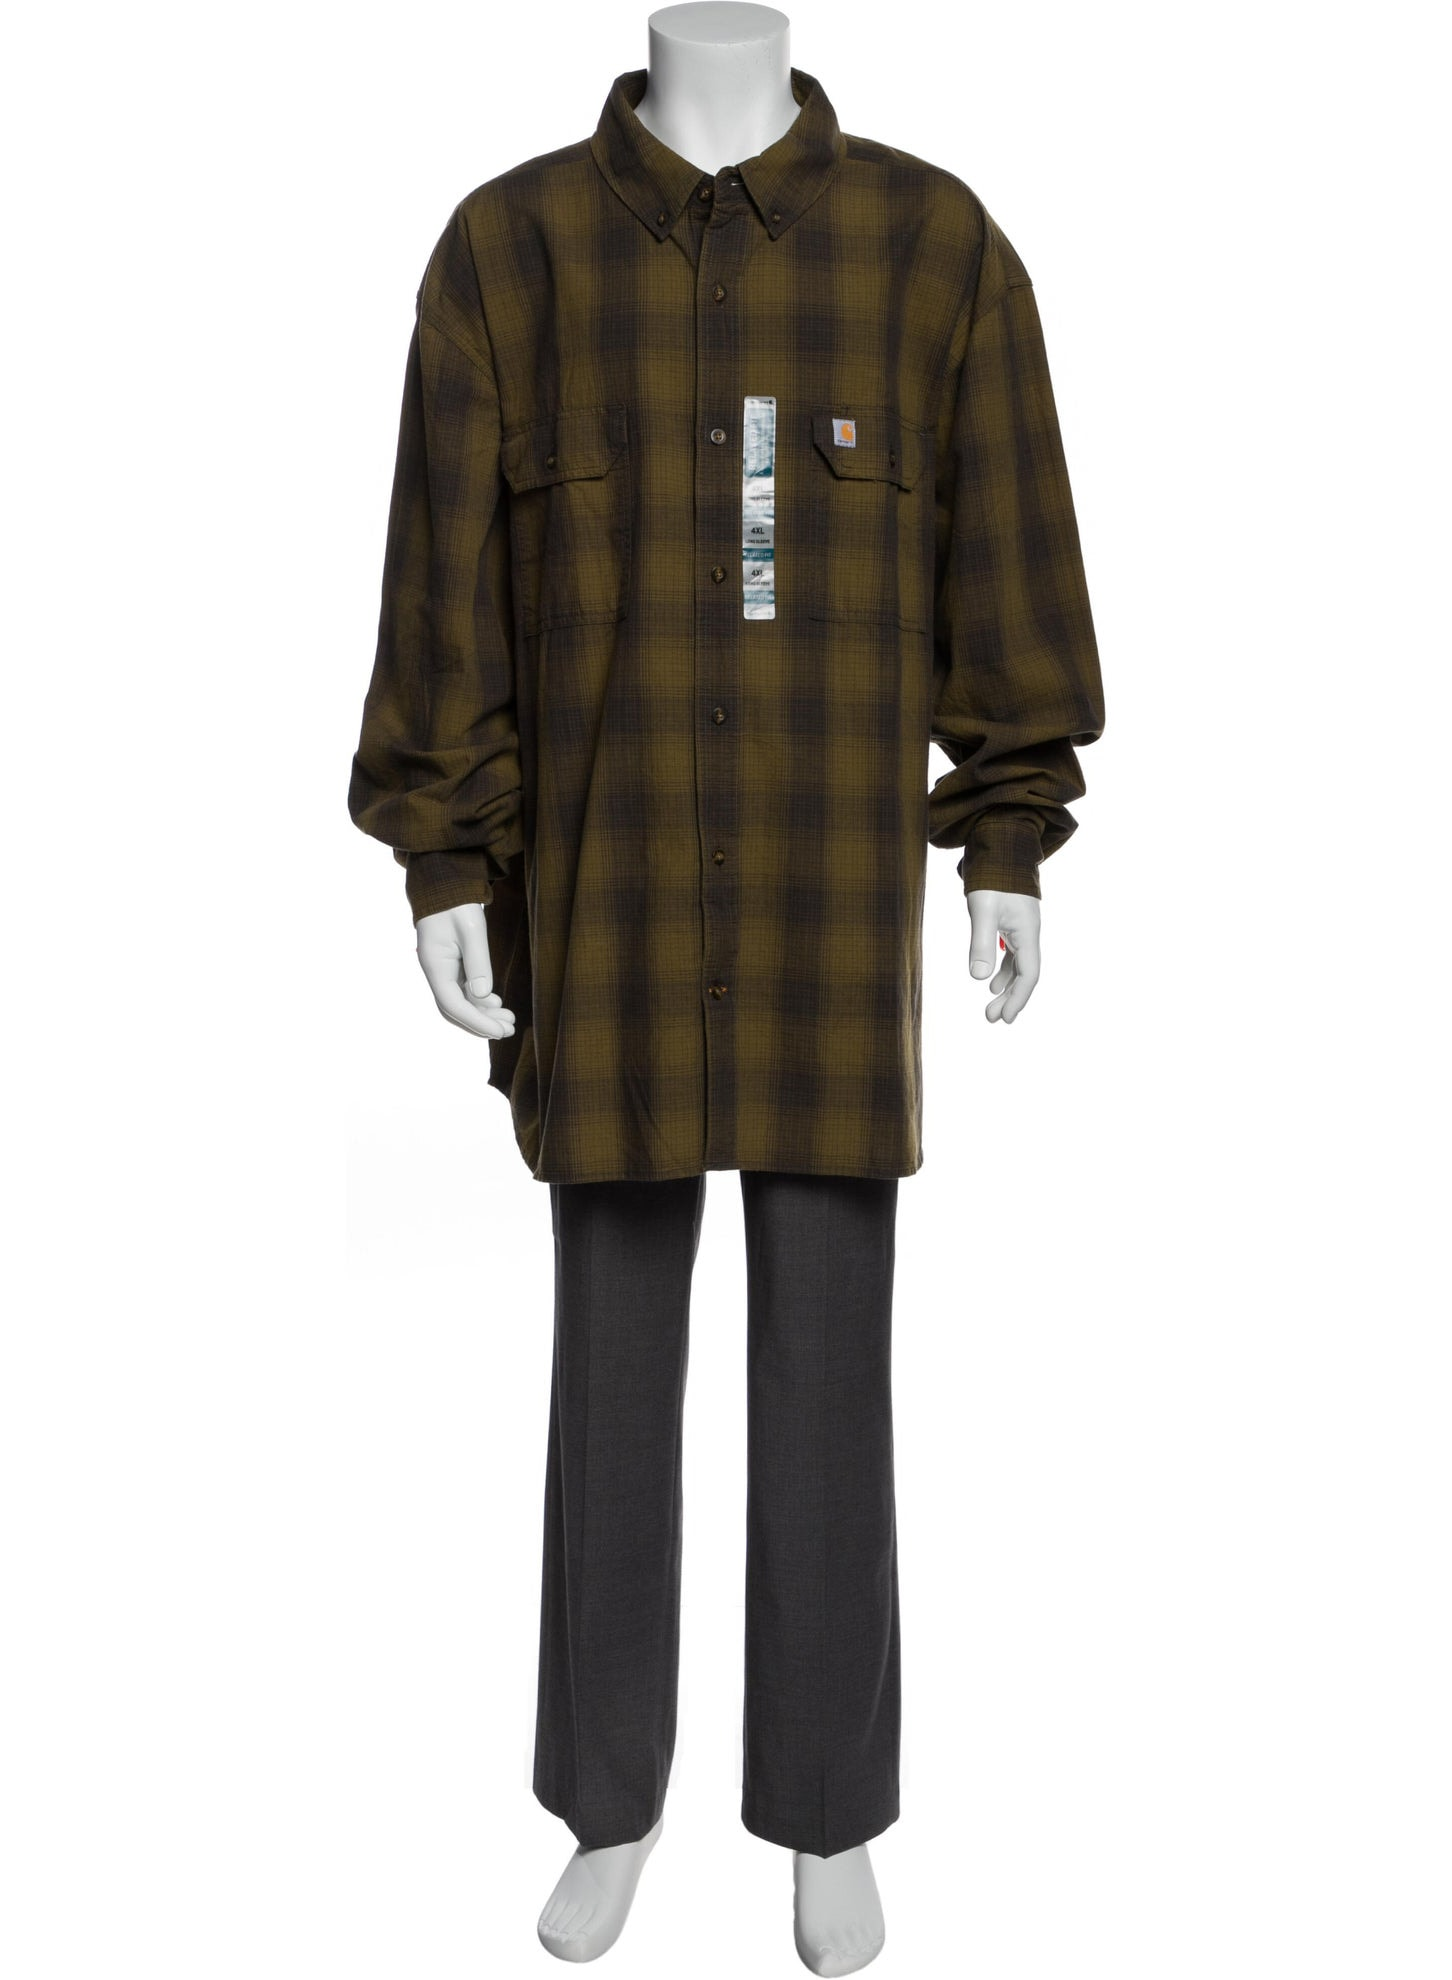 CARHARTT WORK IN PROGRESS Plaid Print Long Sleeve Shirt w: Tags